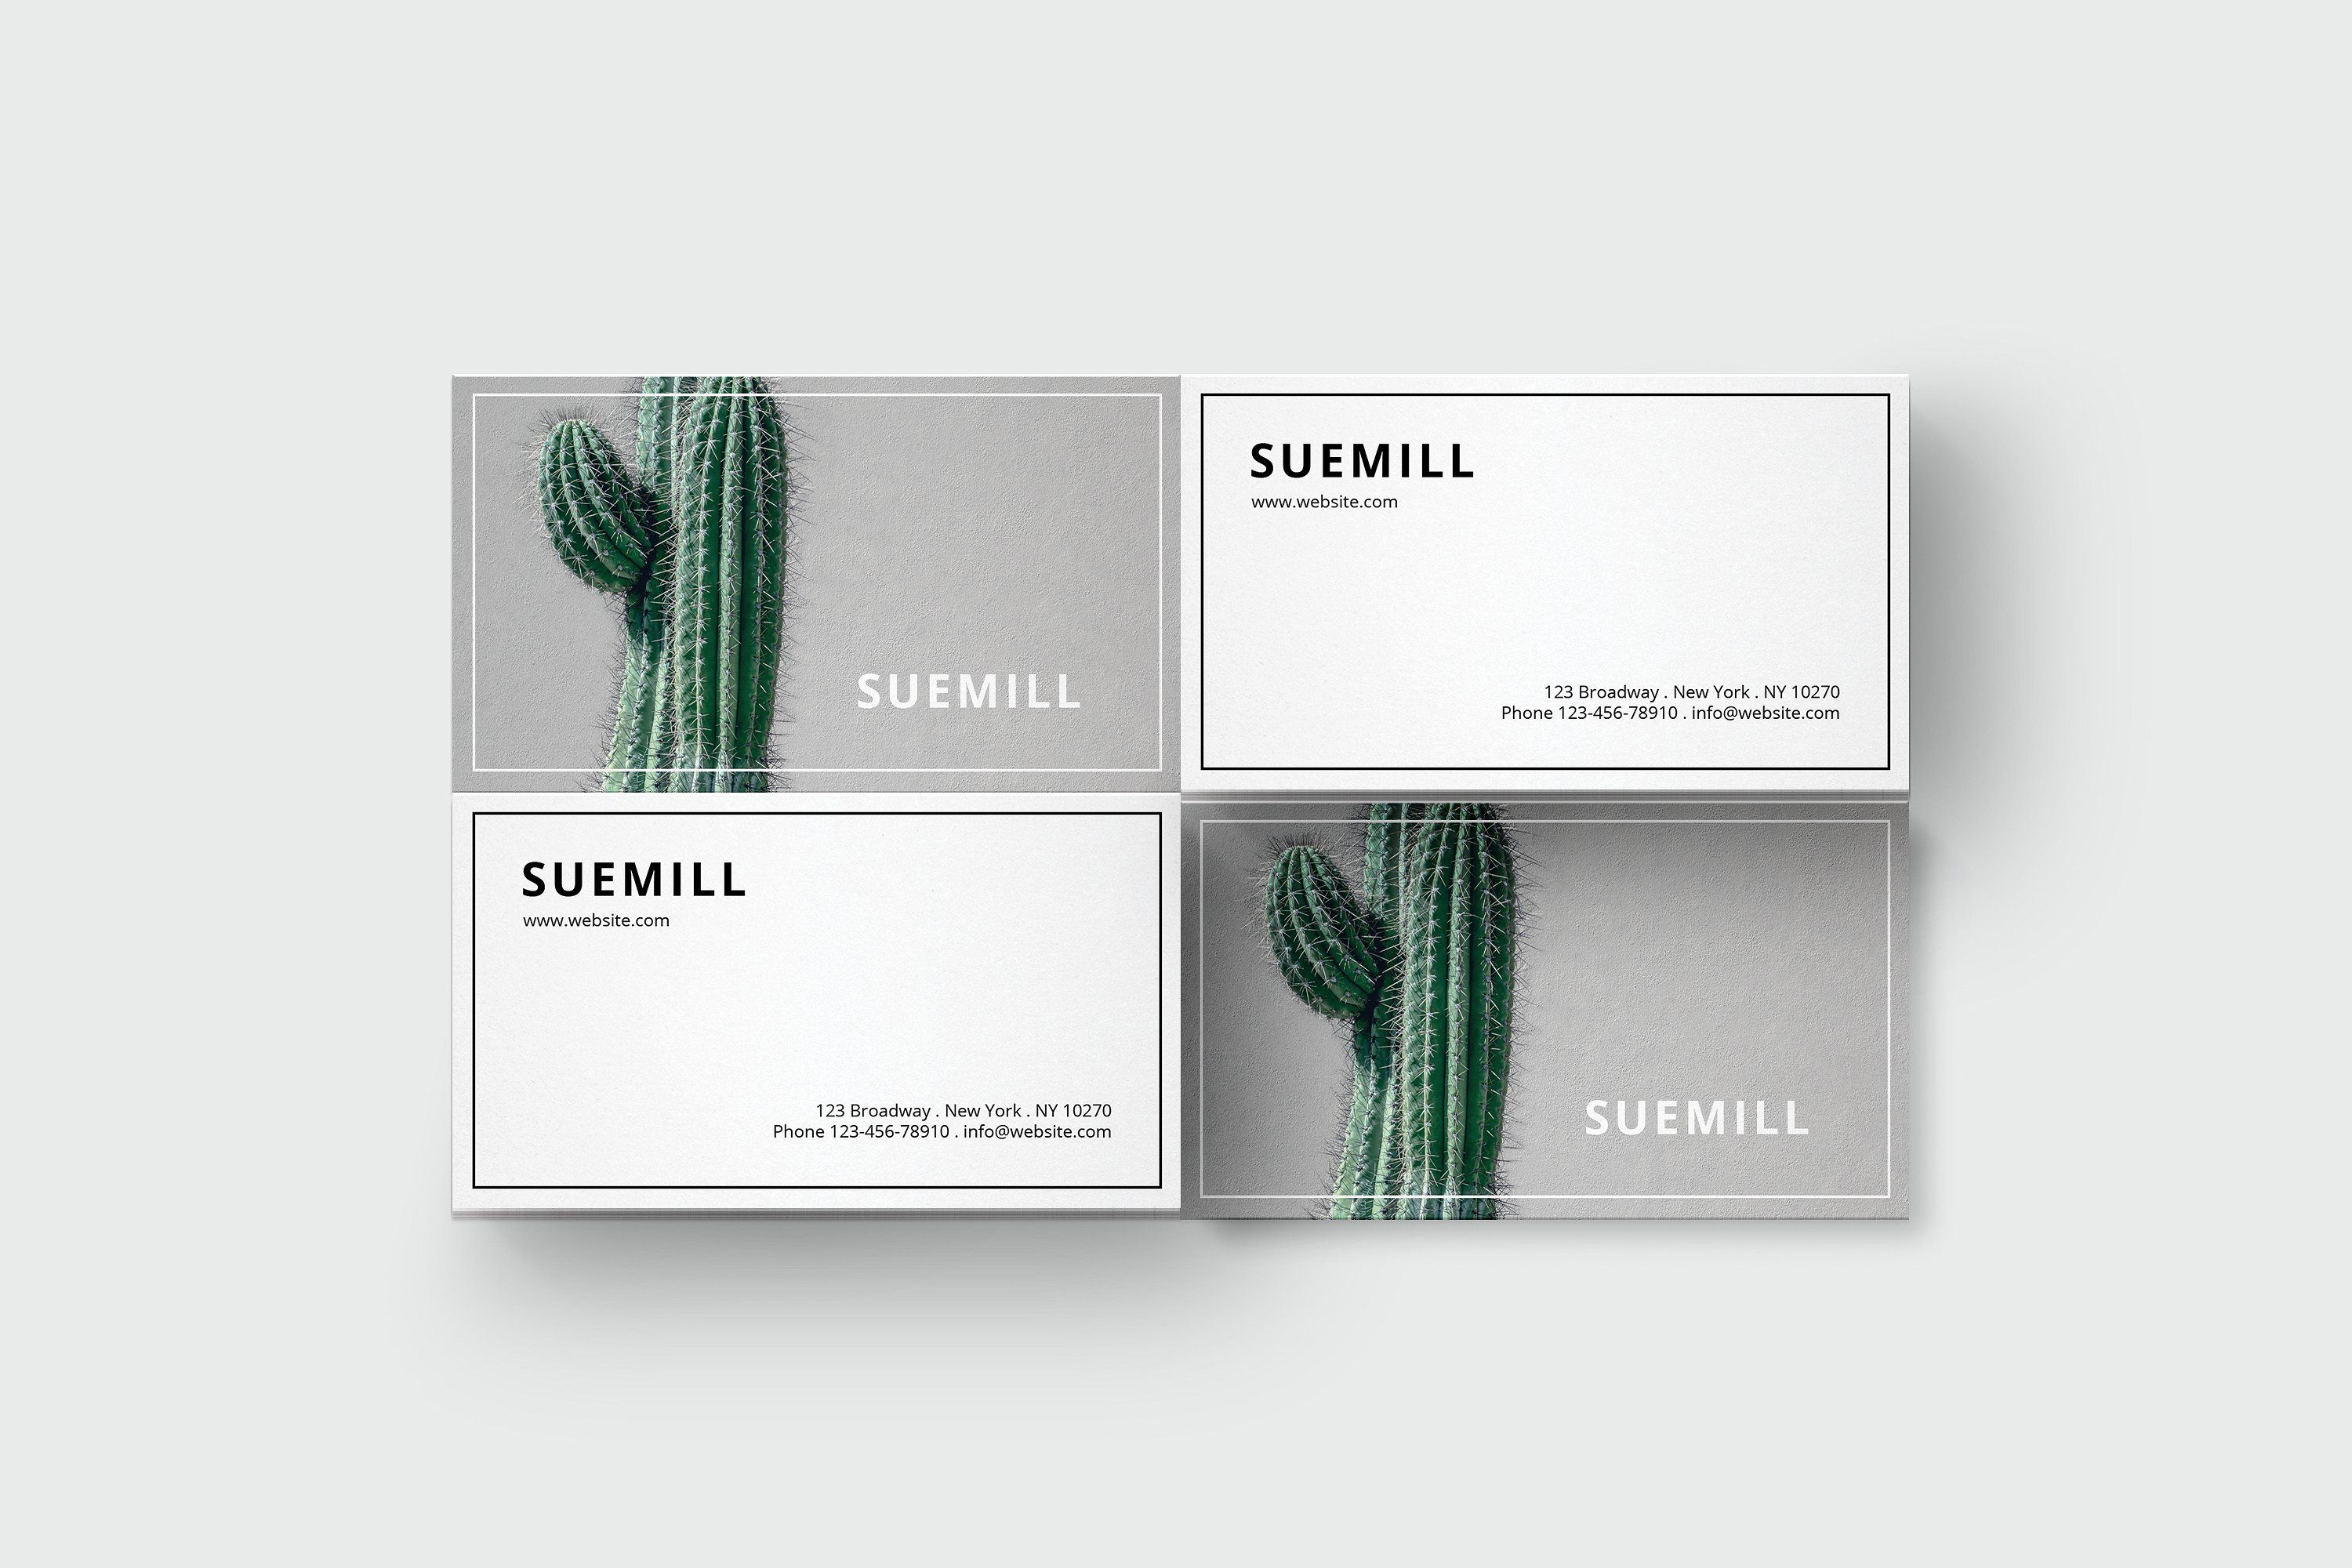 Business card template with cactus   Card templates, Business cards ...